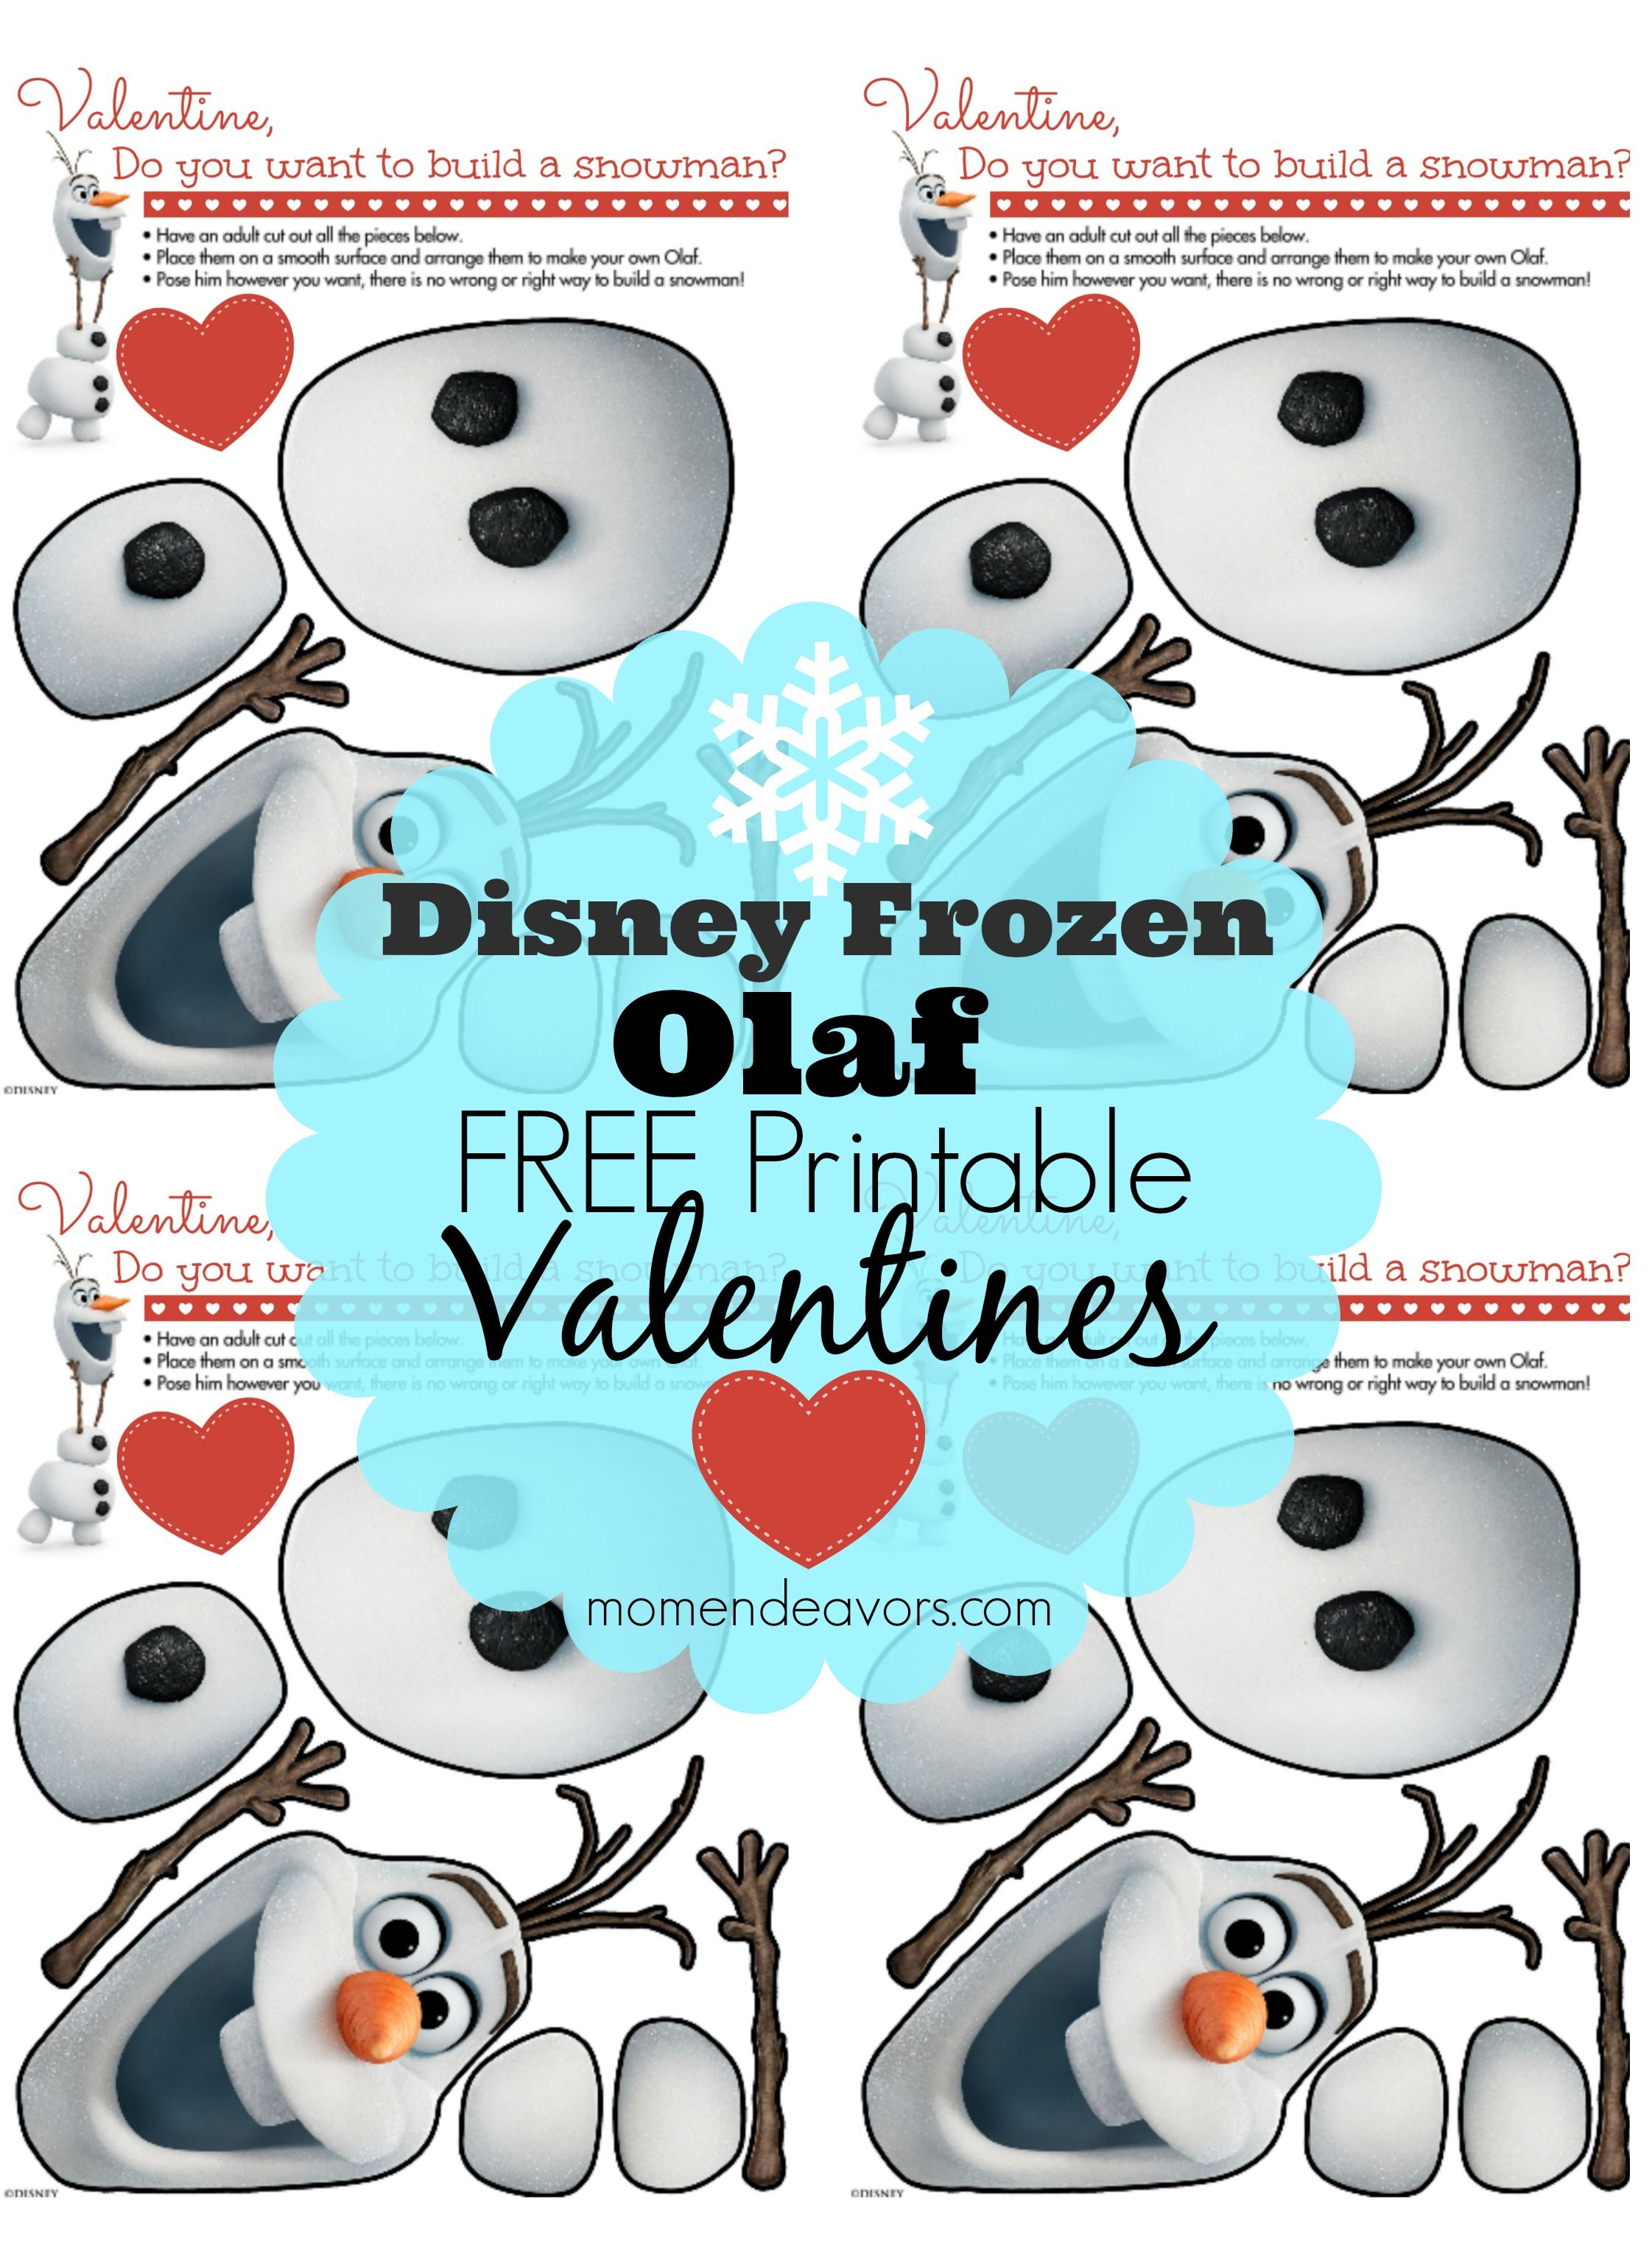 image regarding Do You Want to Build a Snowman Printable named Lovable+Disneys+FROZEN+Olaf+Free of charge+Printable+Valentines+by